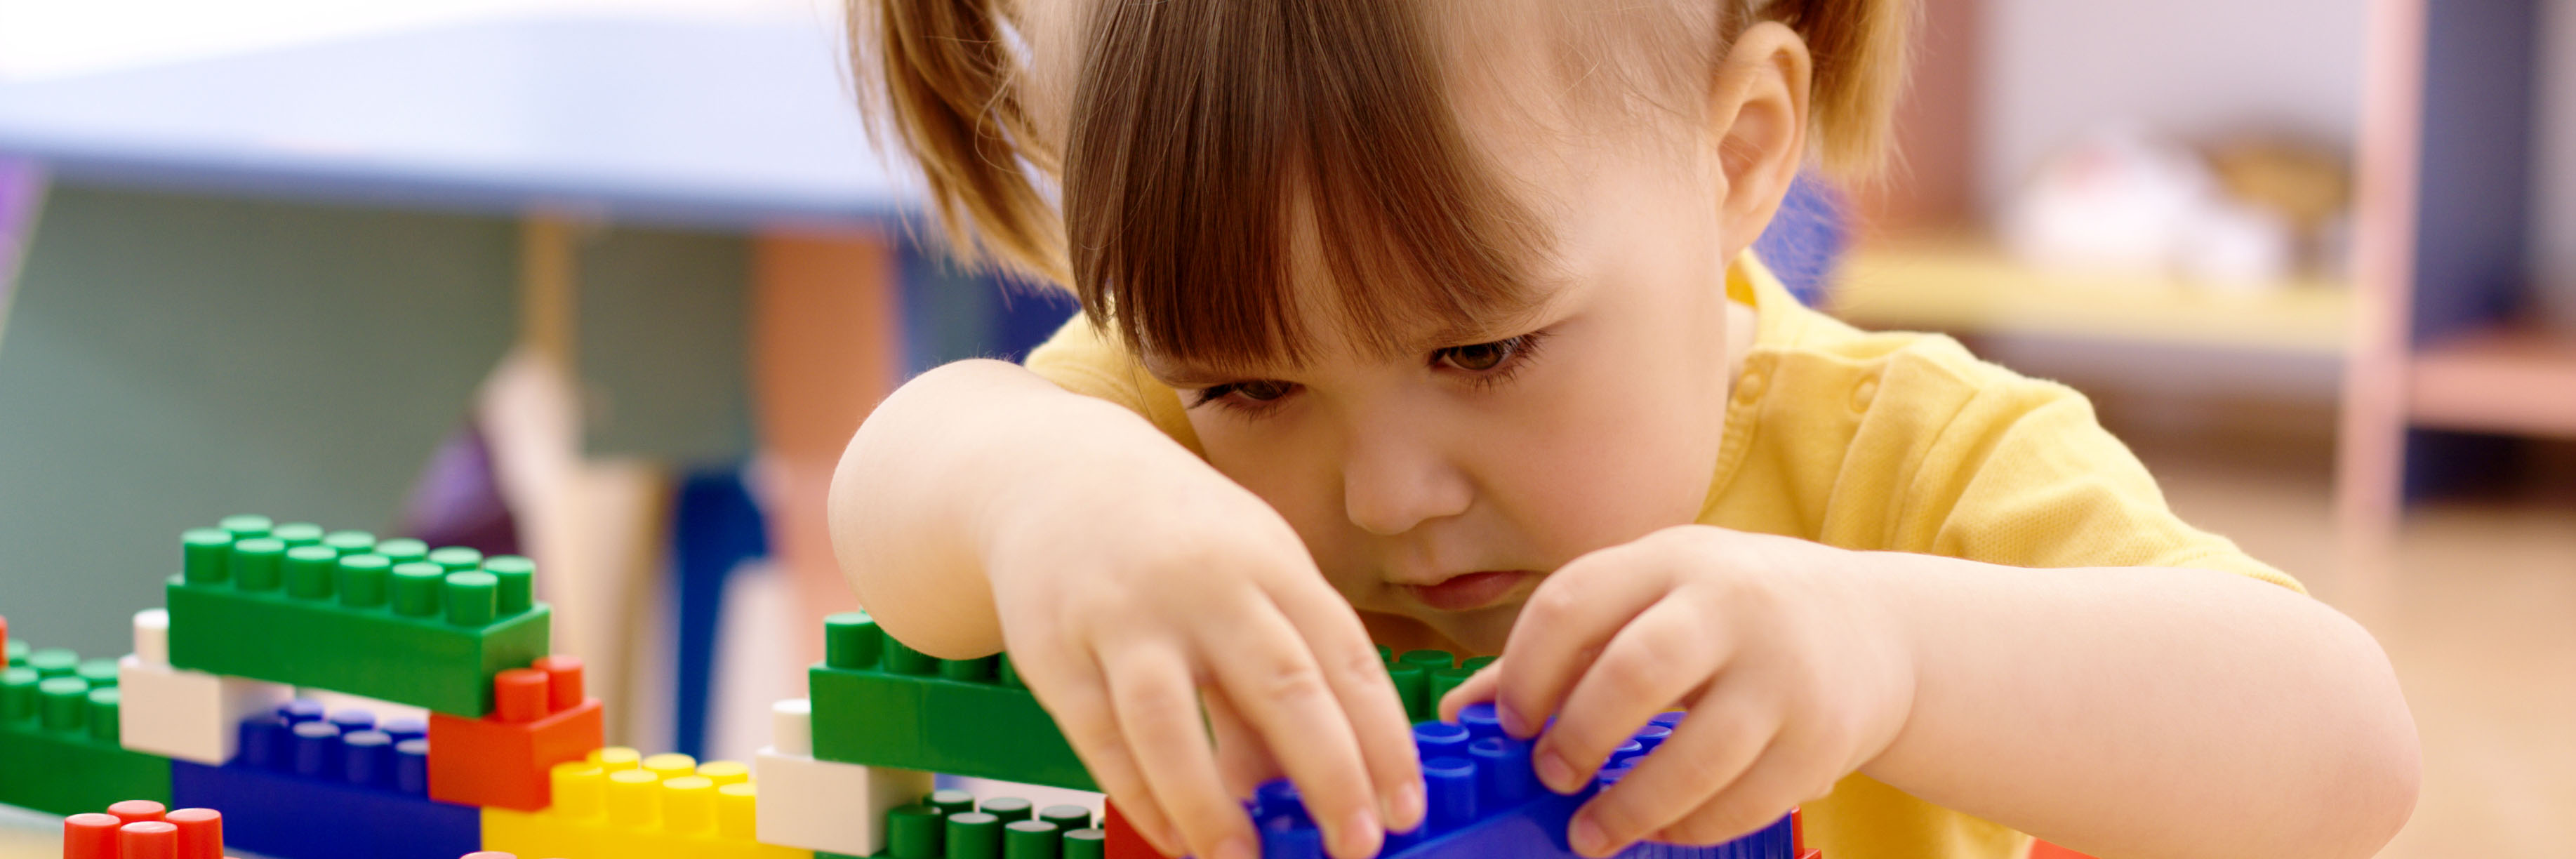 a young girl concentrates on building blocks